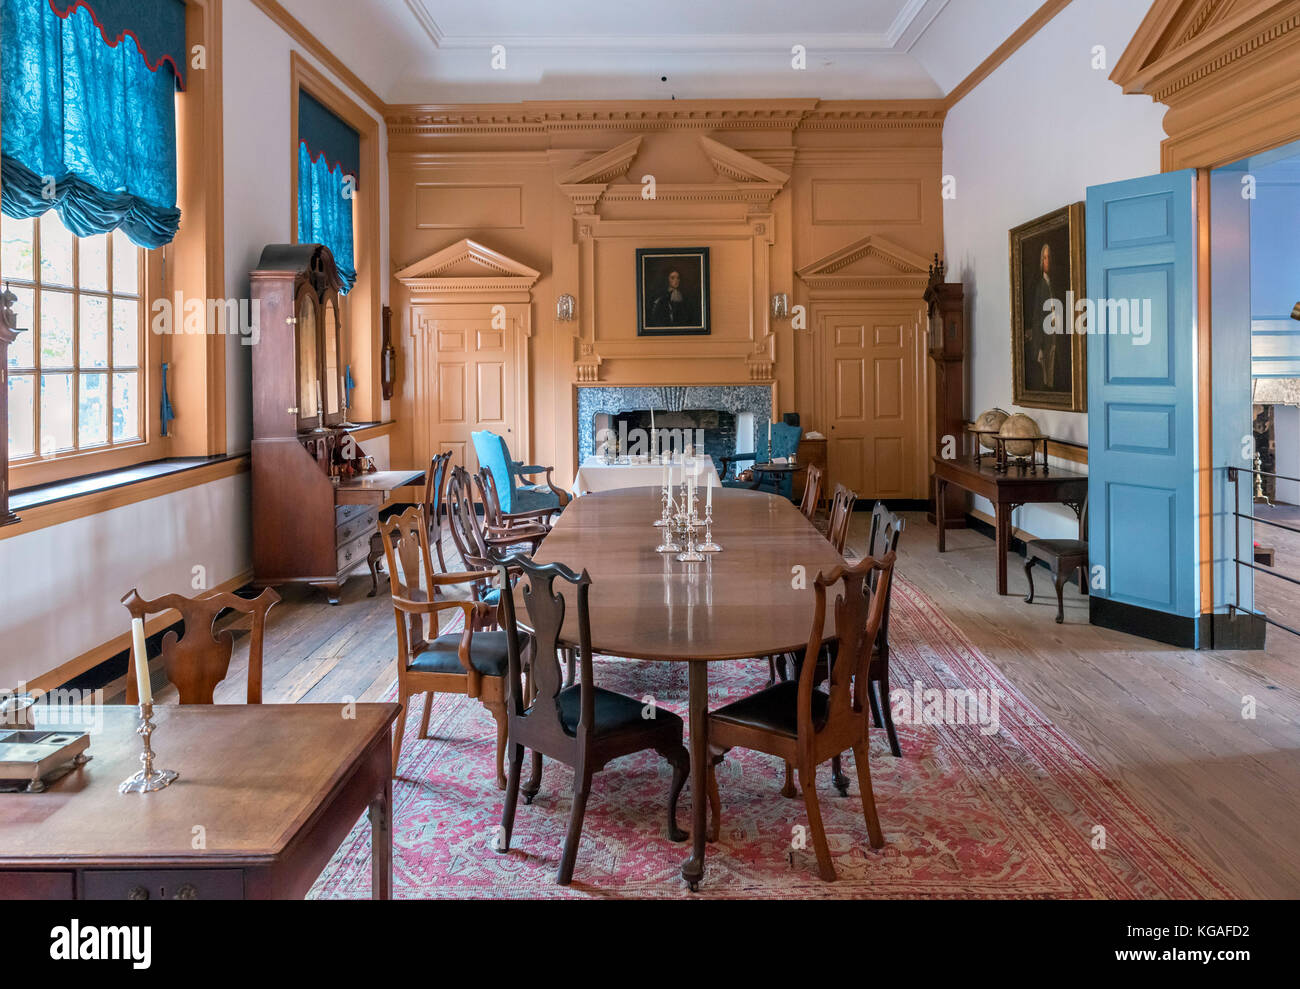 The Governor's Council Chamber in Independence Hall, Independence National Historic Park, Philadelphia, Pennsylvania, - Stock Image